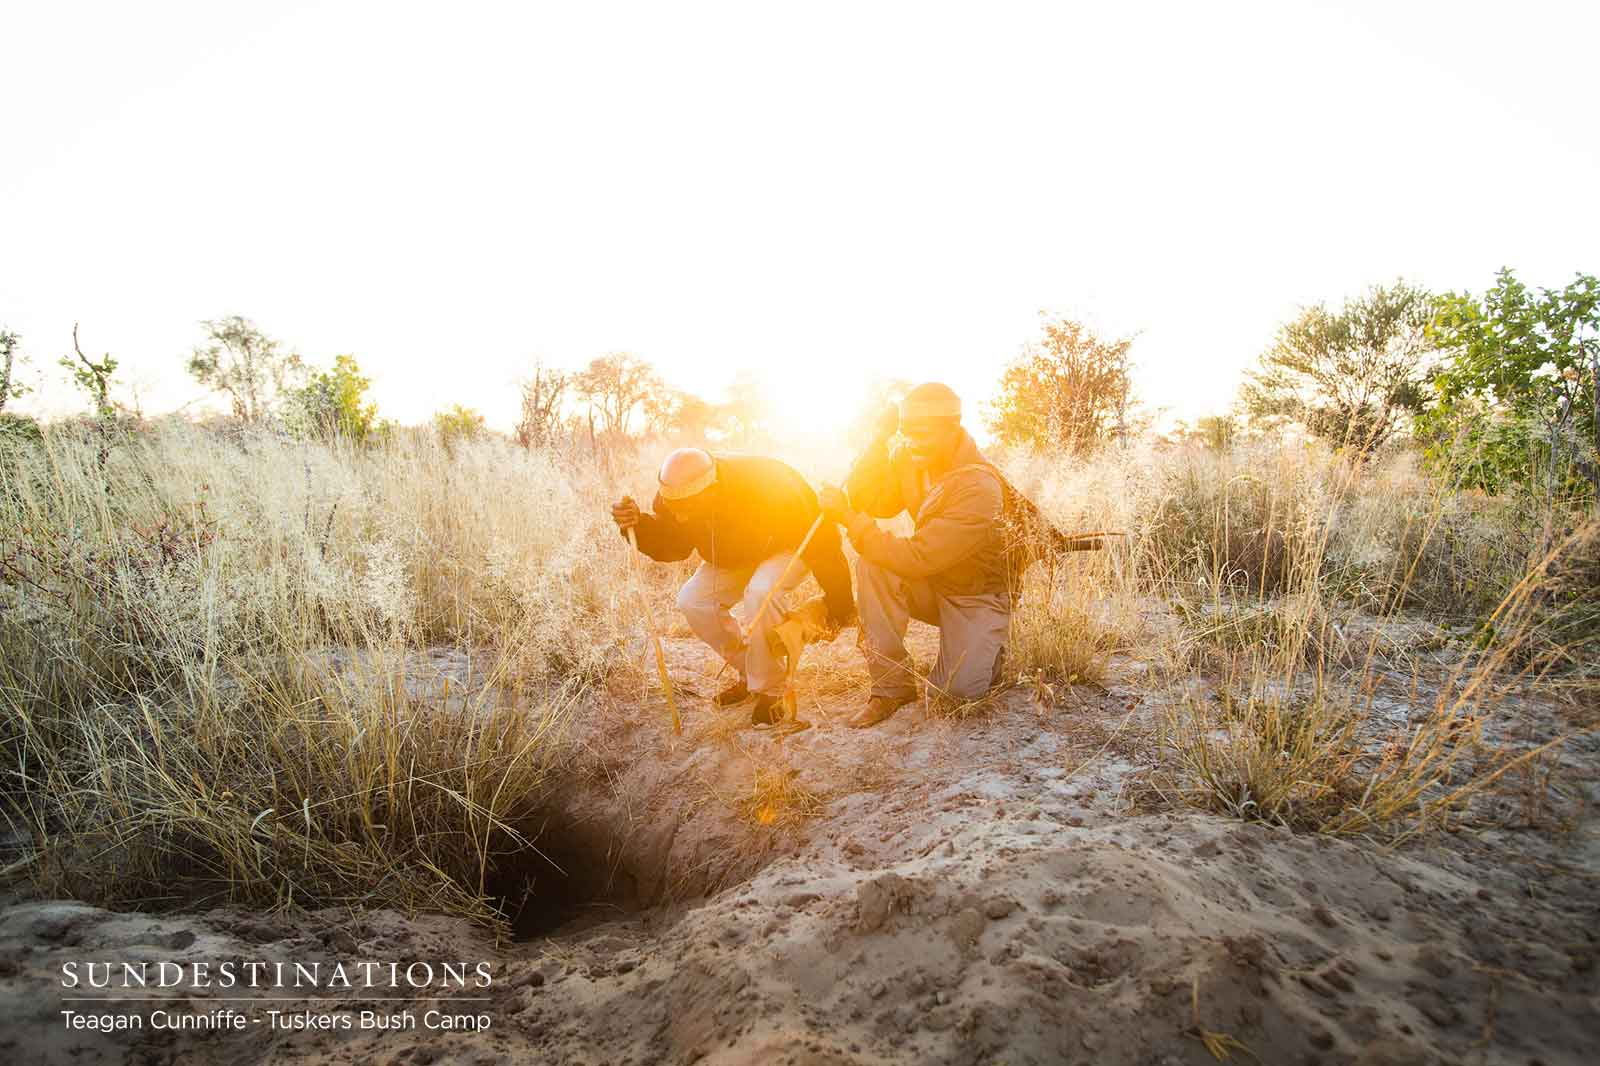 Morning Walks with Bushman of Tuskers